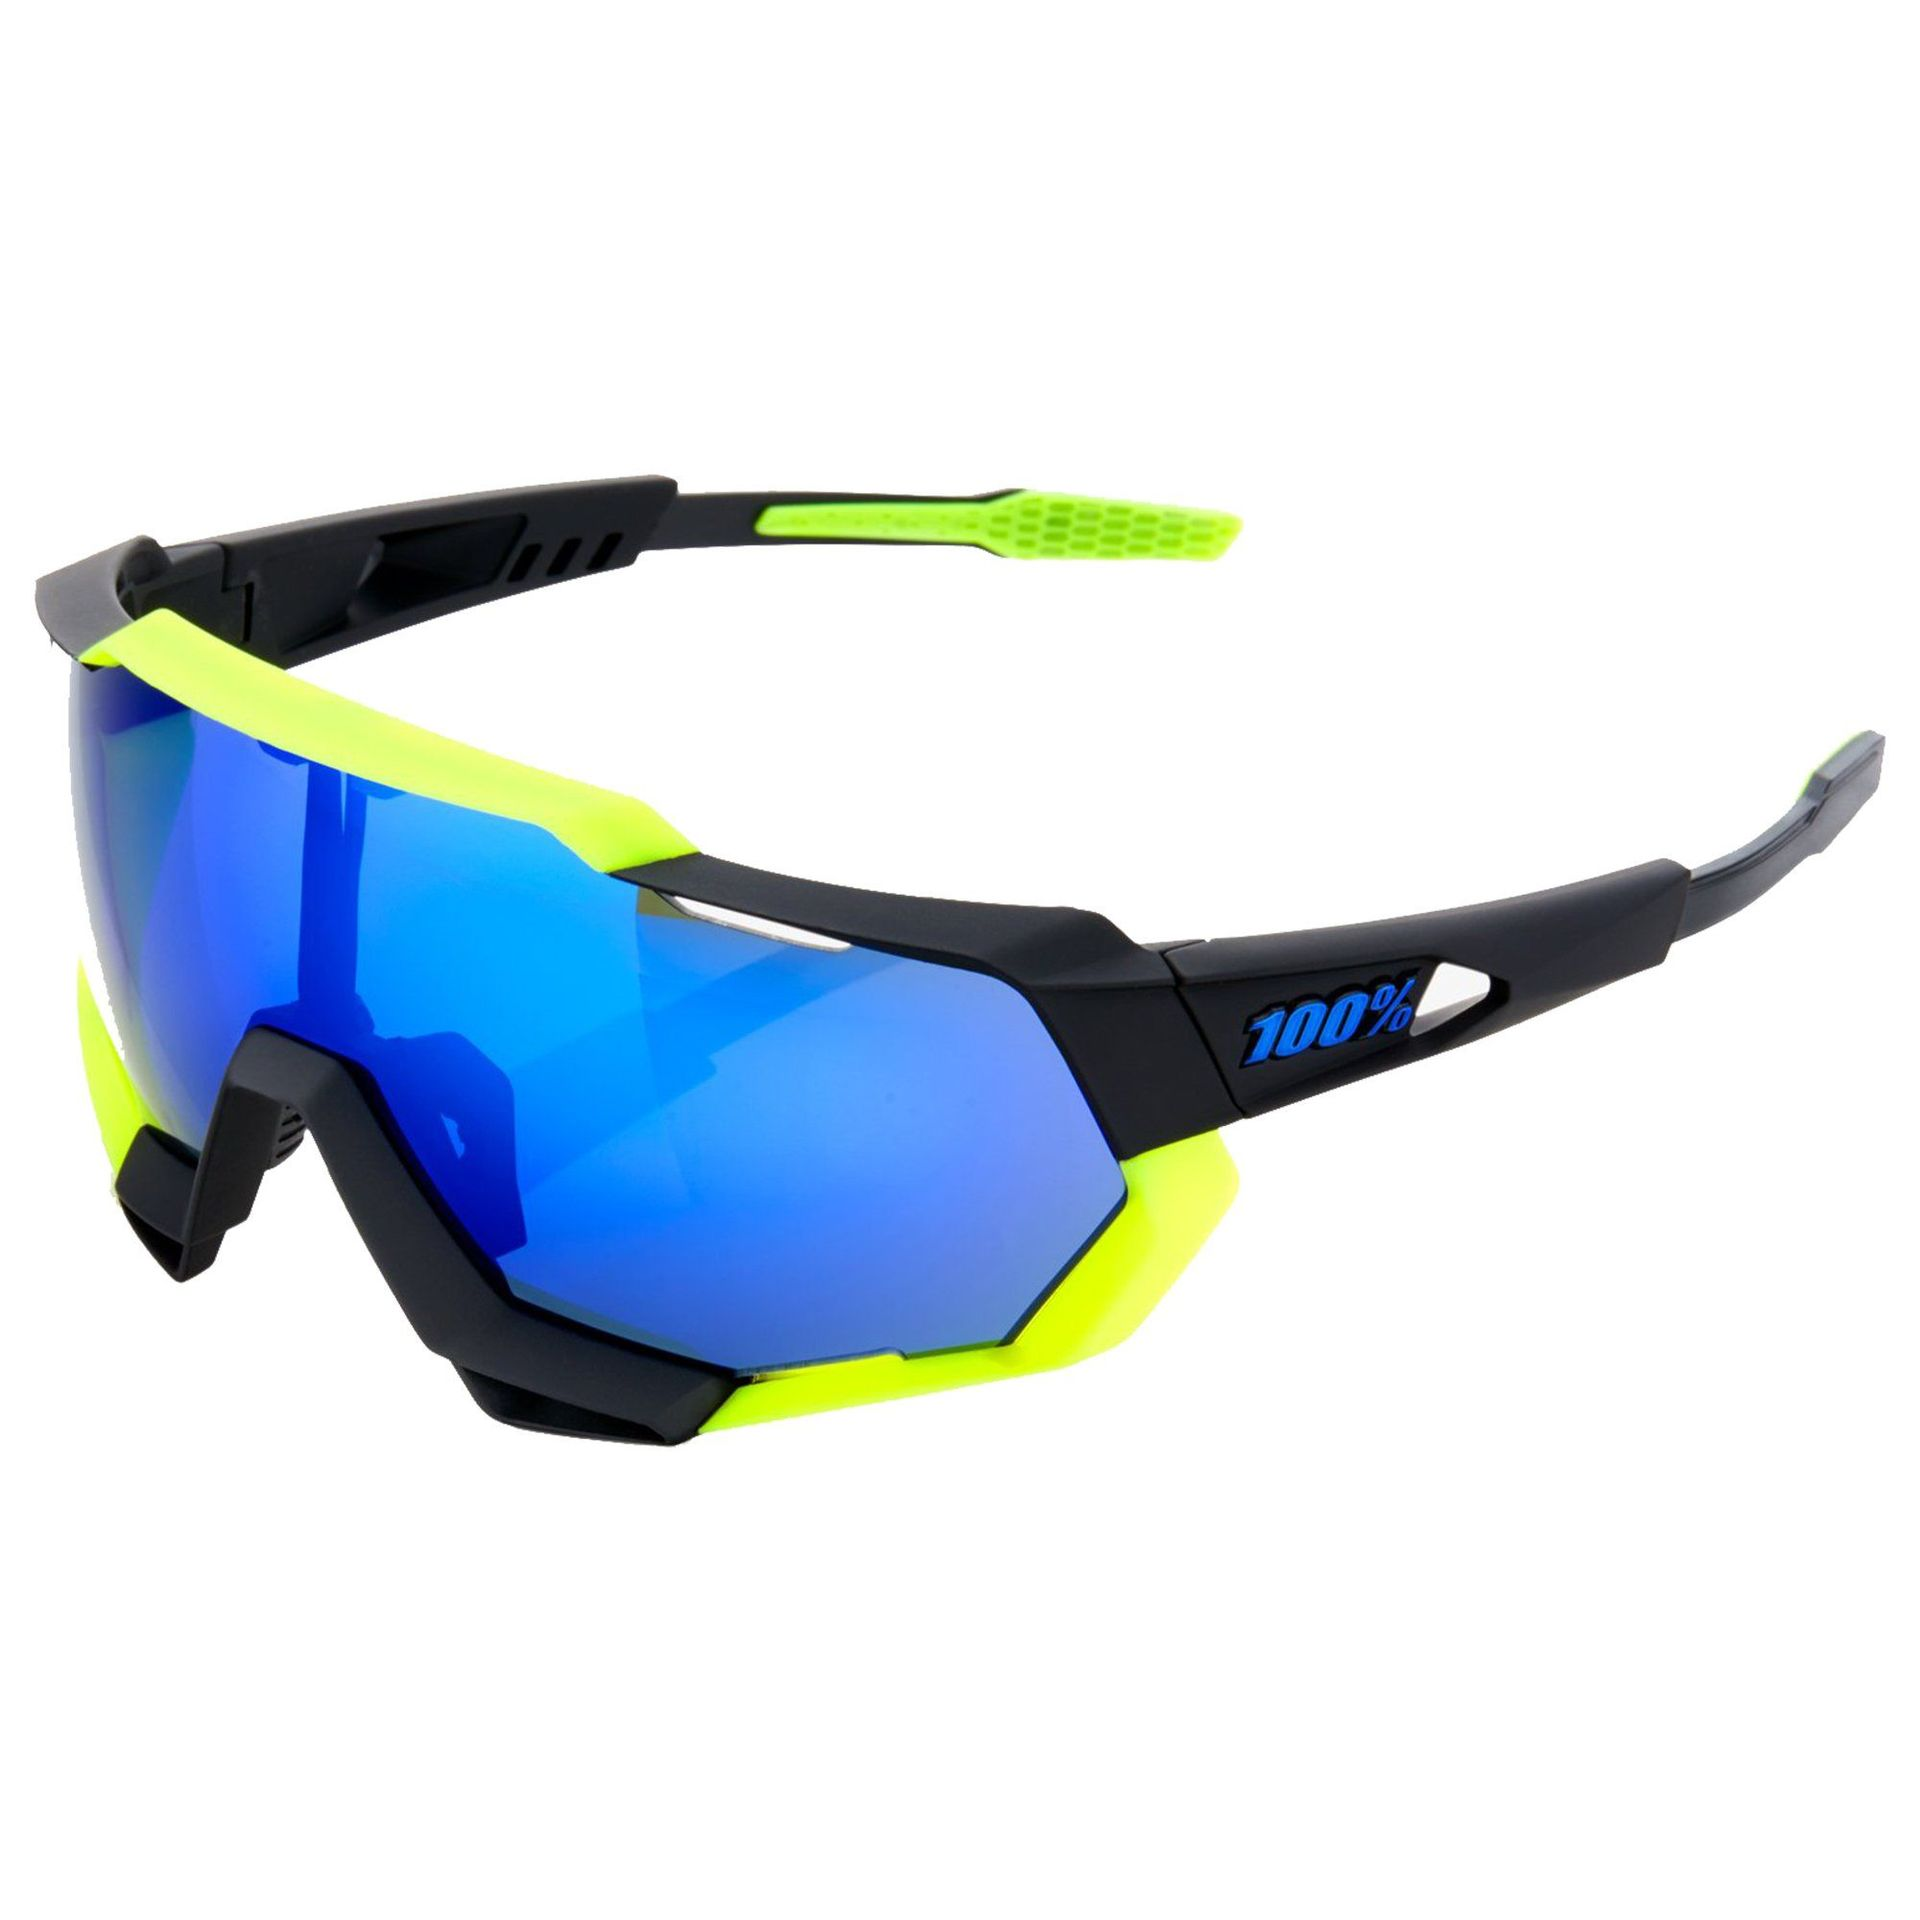 OKULARY 100% SPEEDTRAP SOFT TACT BLACK|NEON YELLOW|ELECTRIC BLUE 1